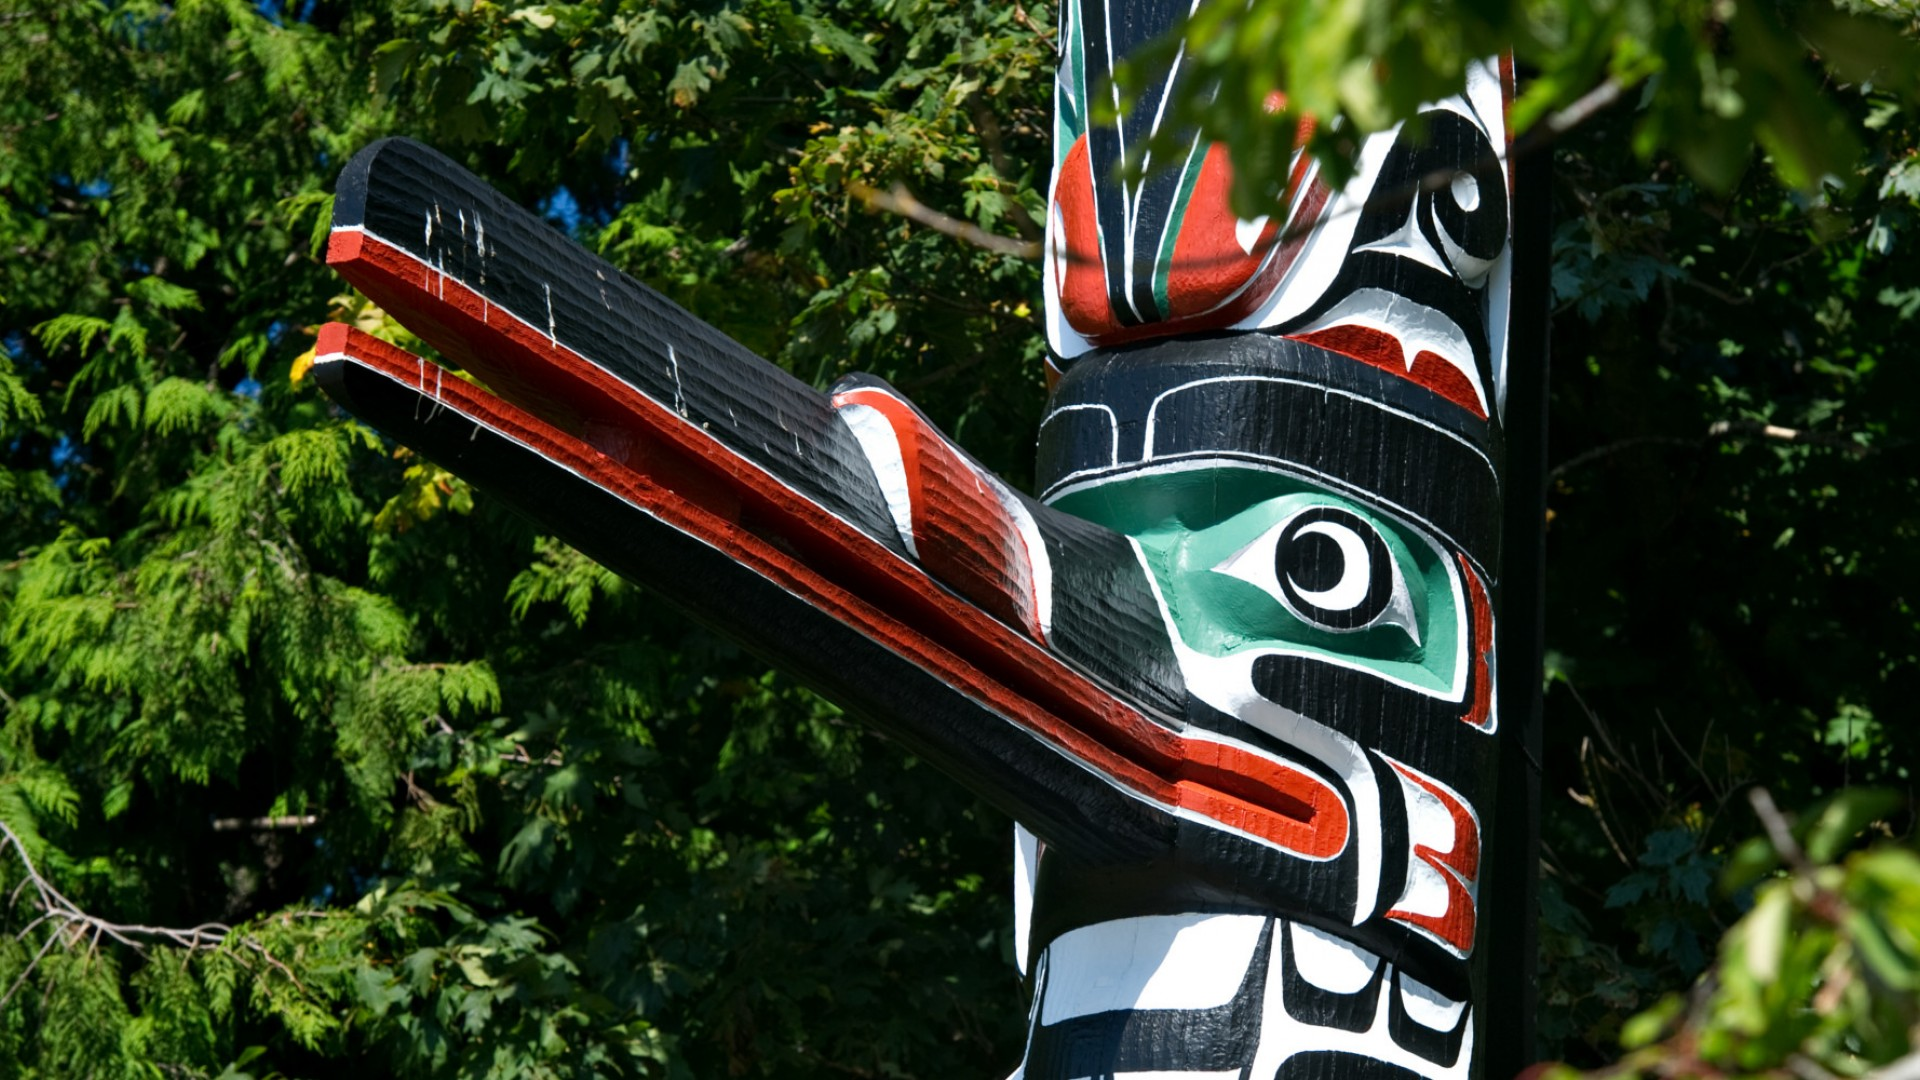 first nations totem pole in british columbia, canada